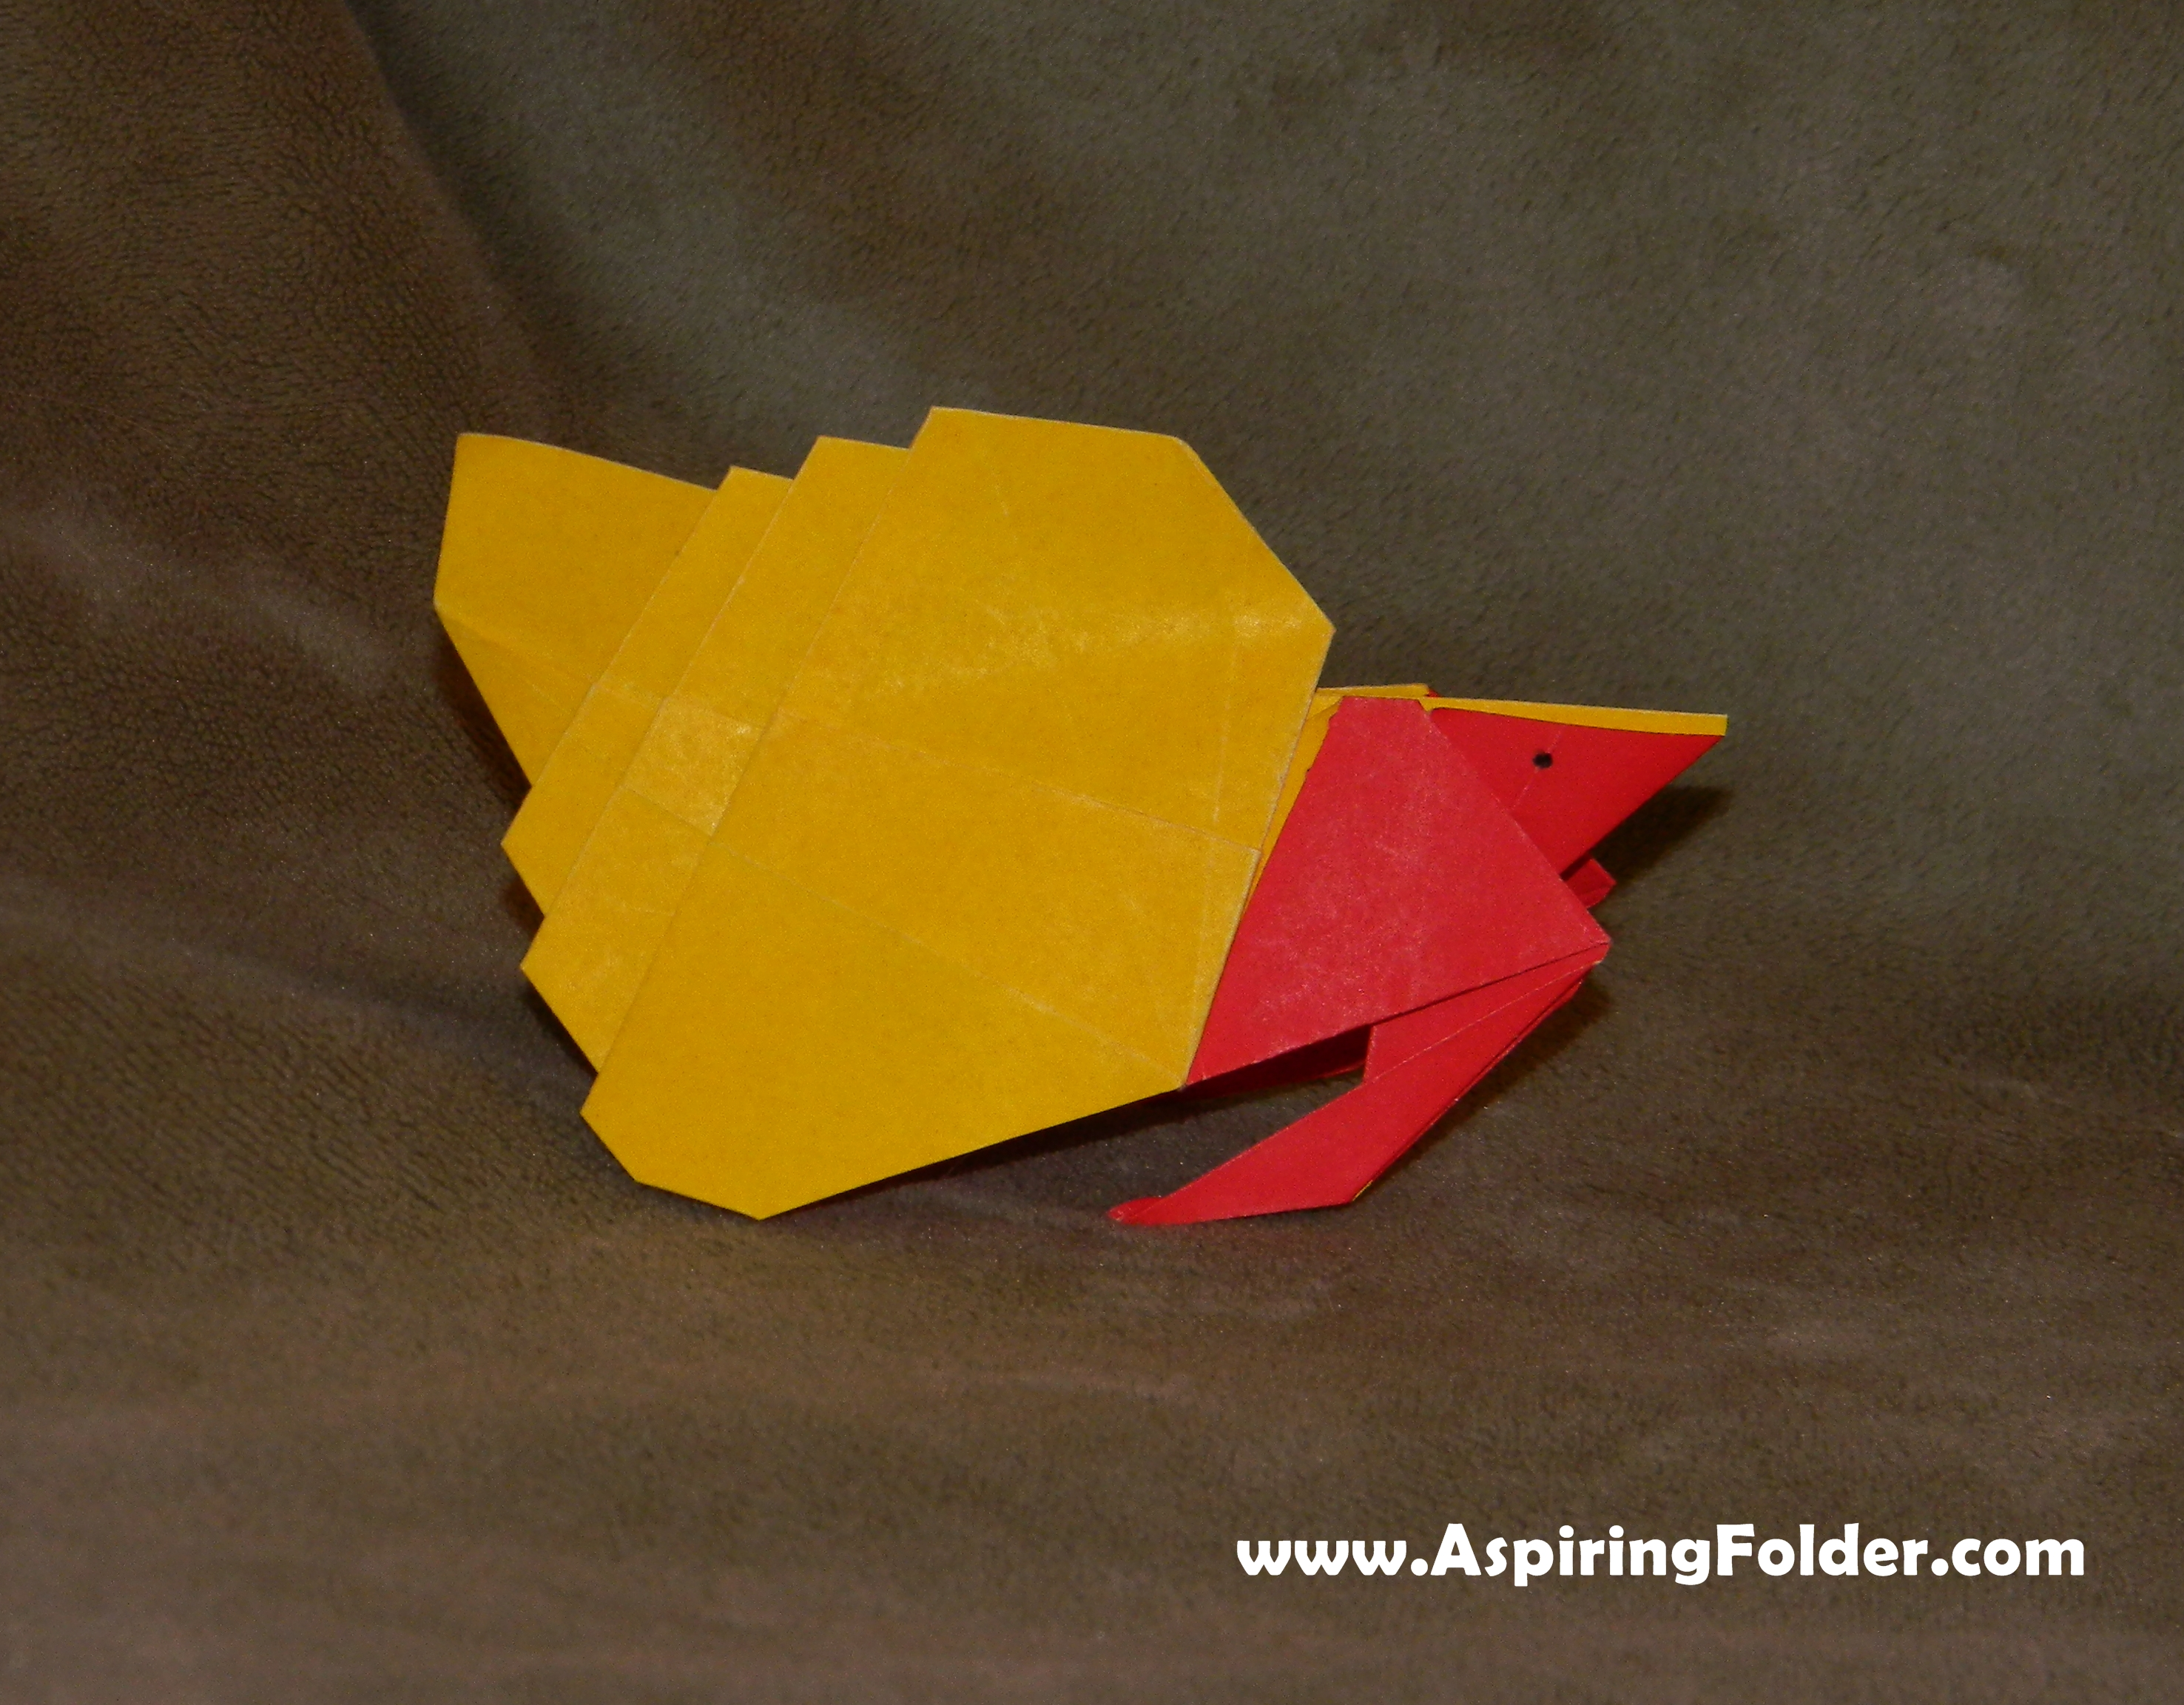 aspiring folder an origami blog page 3